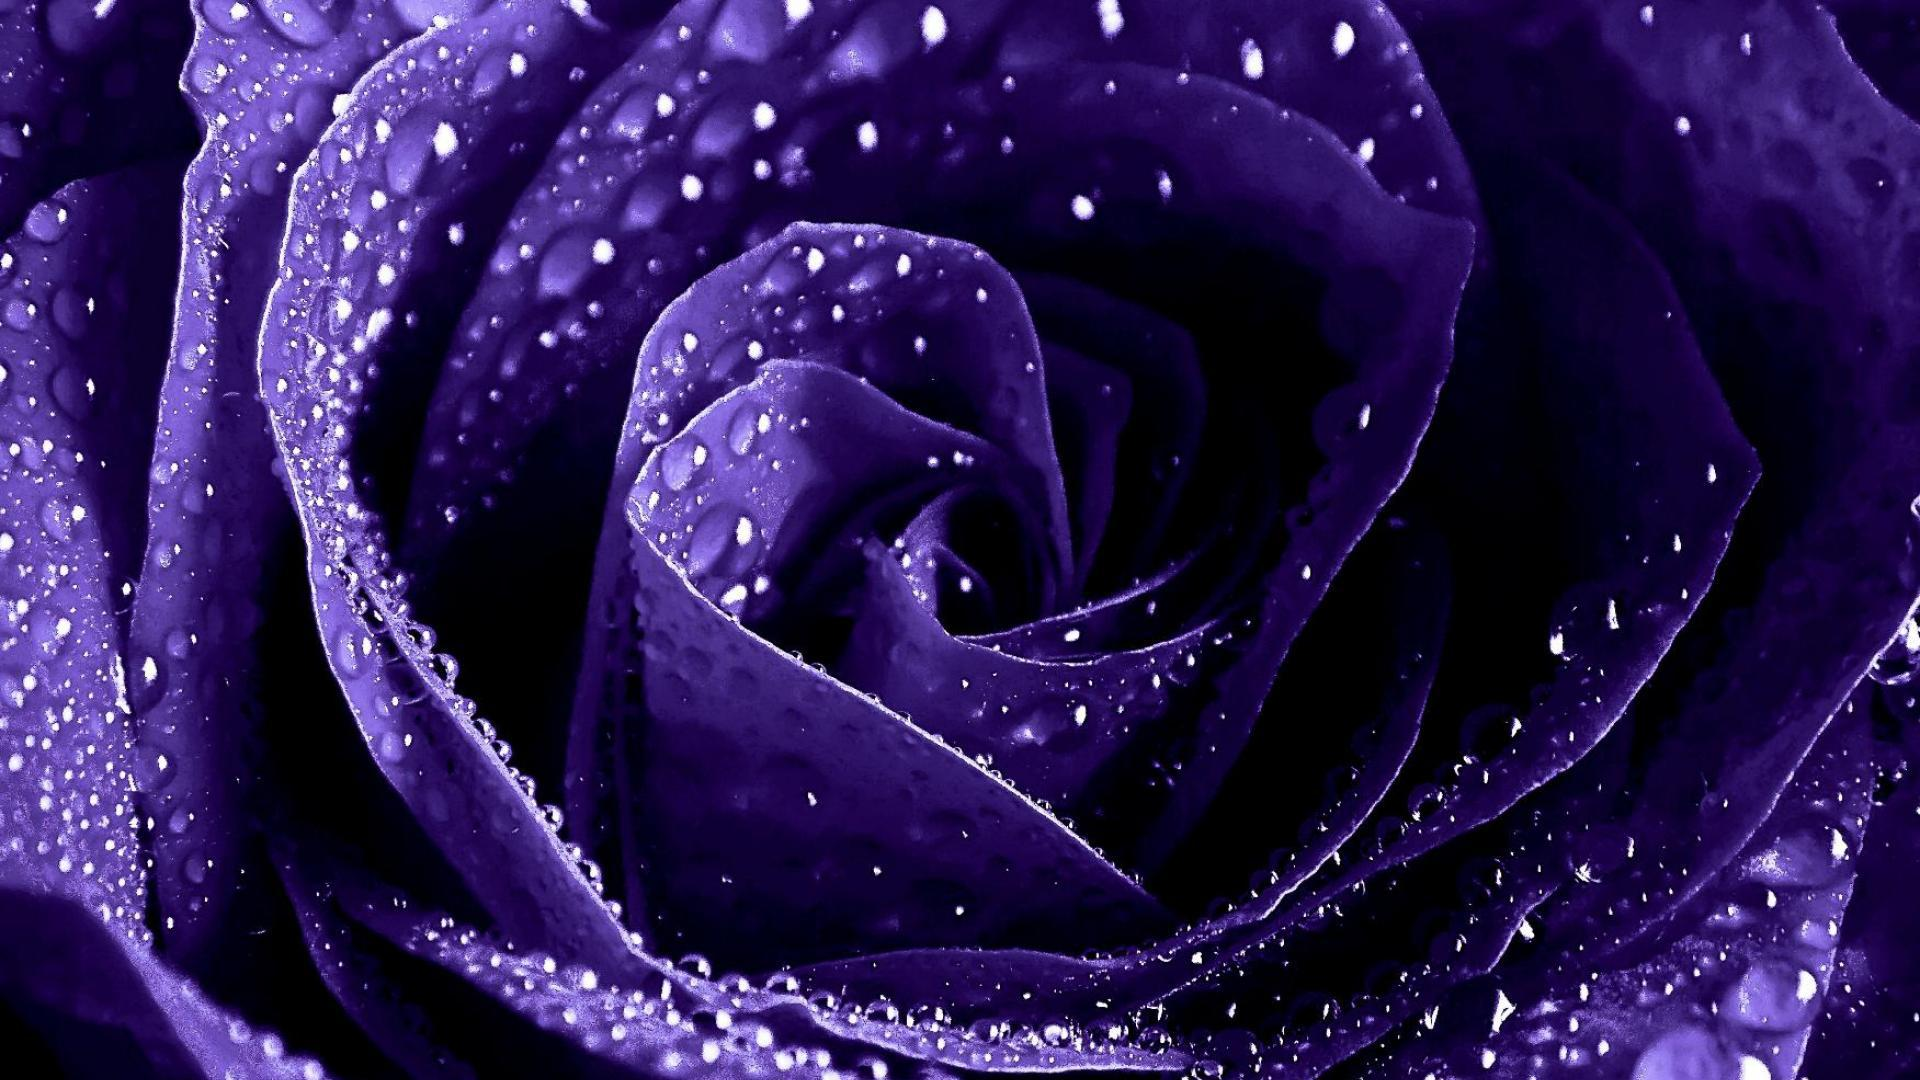 Purple Rose Hd Wallpaper Background Image 1920x1080 Id 694820 Wallpaper Abyss